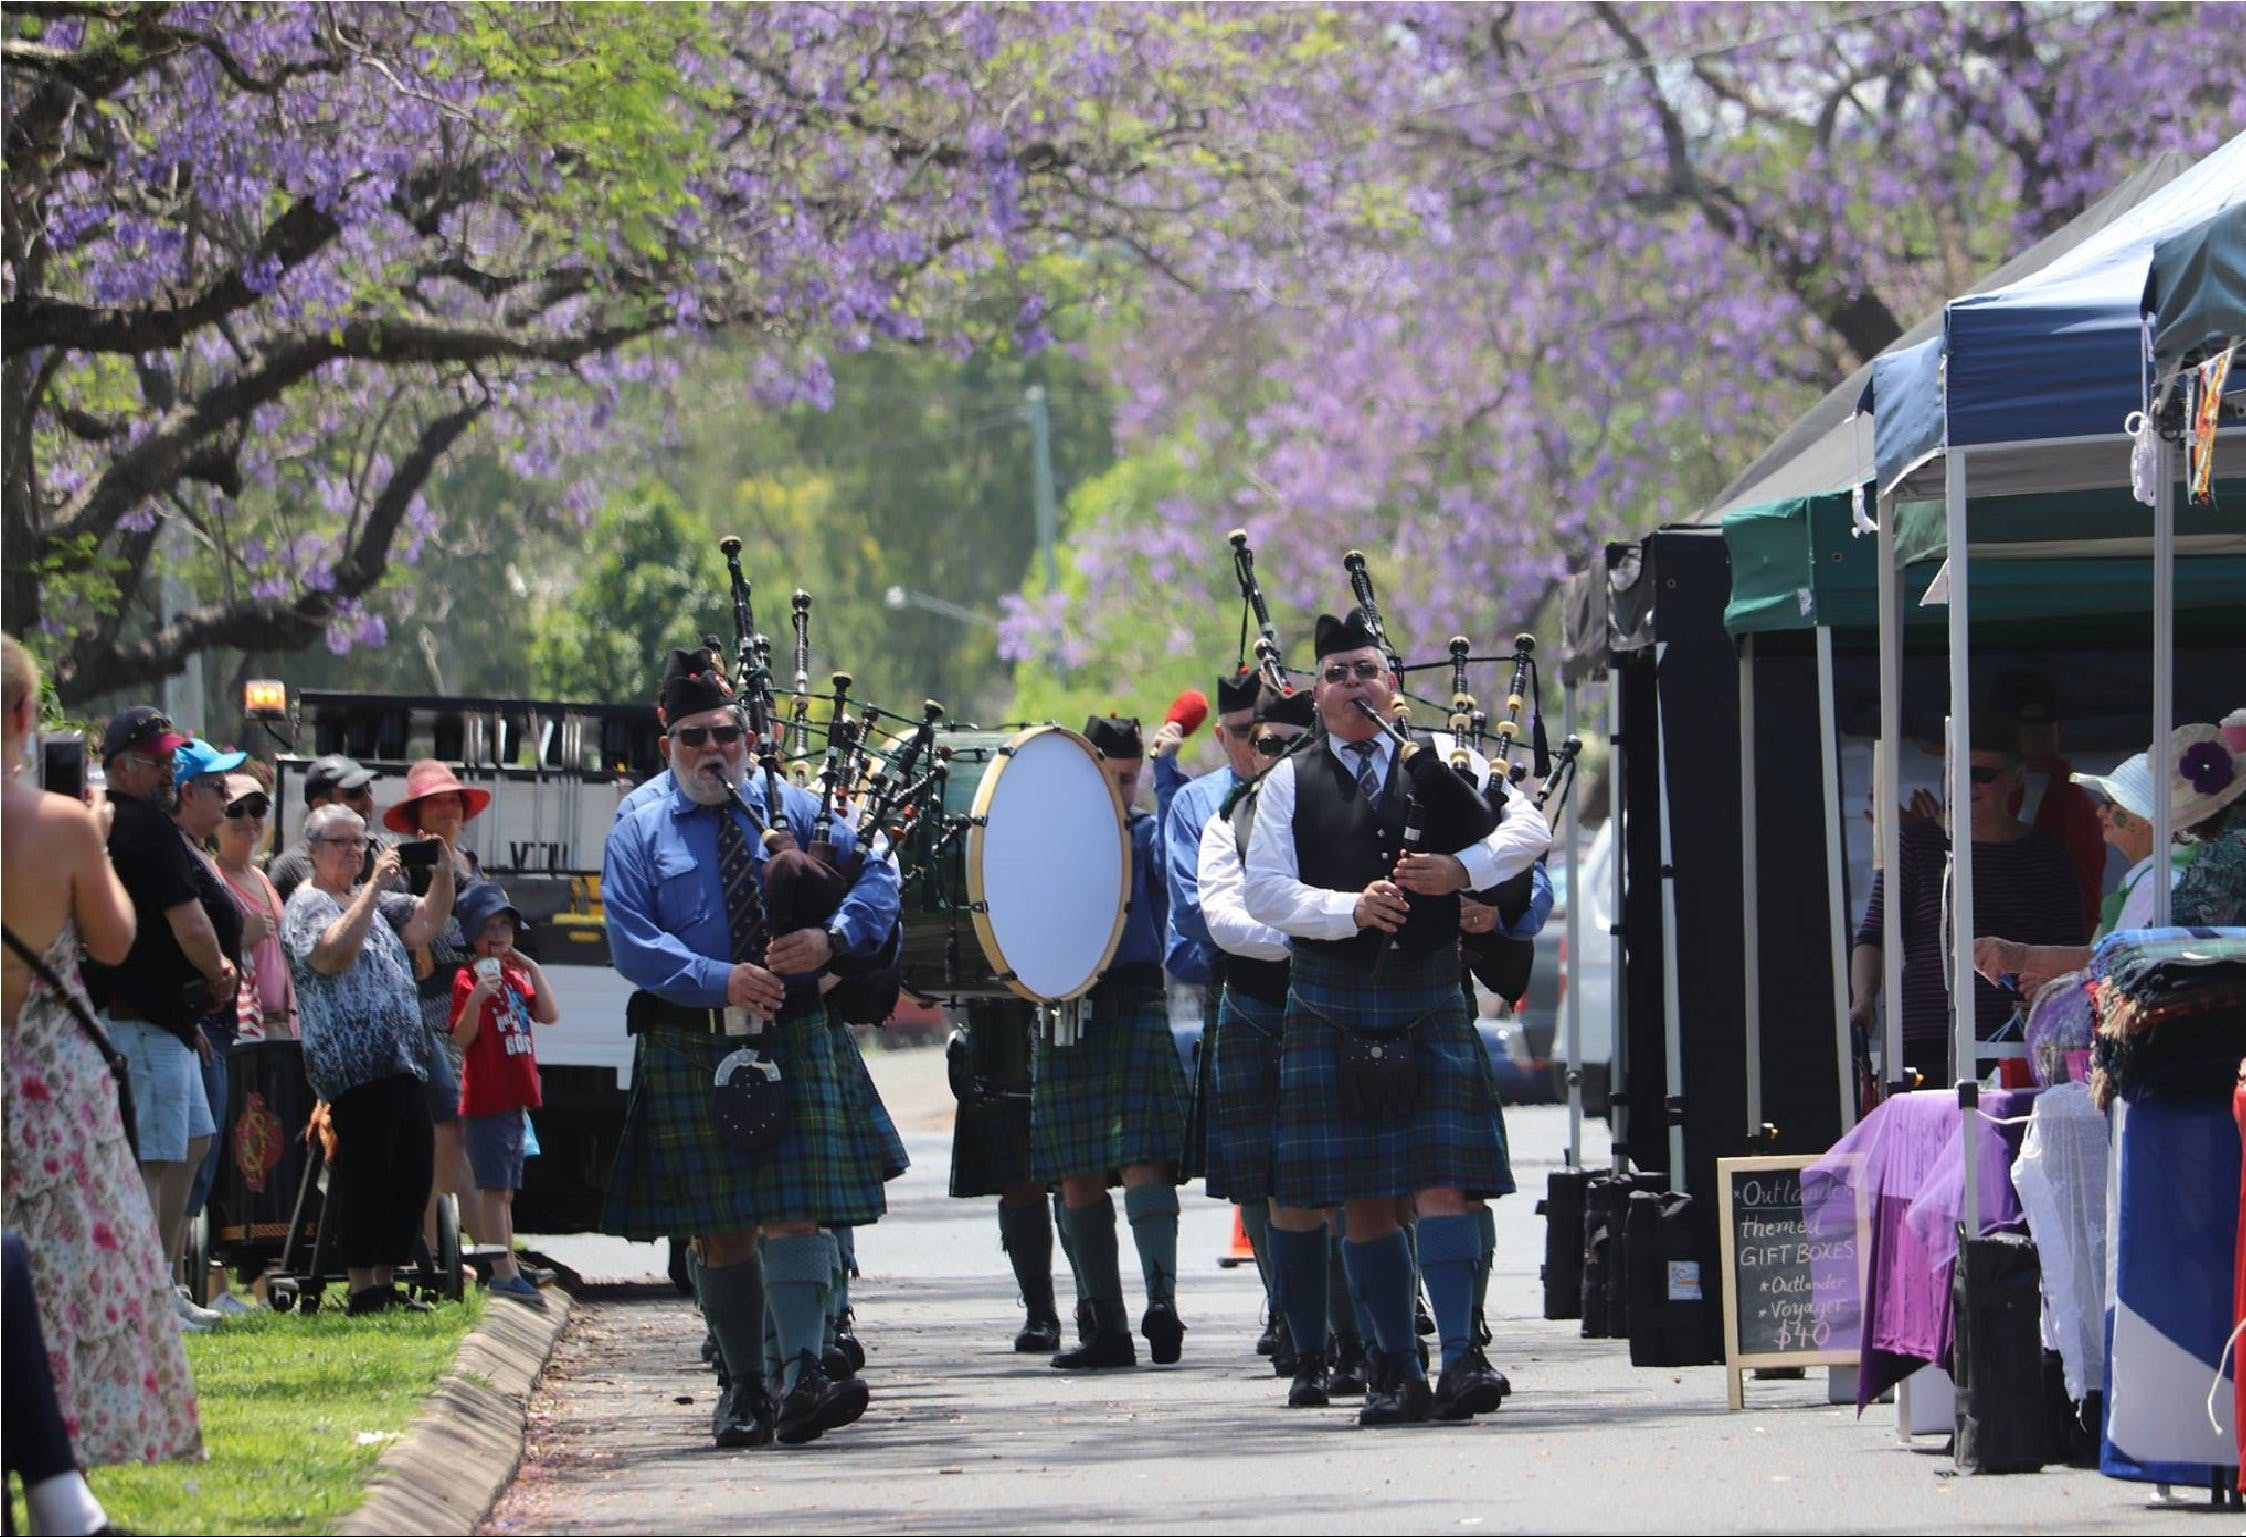 Celtic Festival of Queensland - Pubs and Clubs